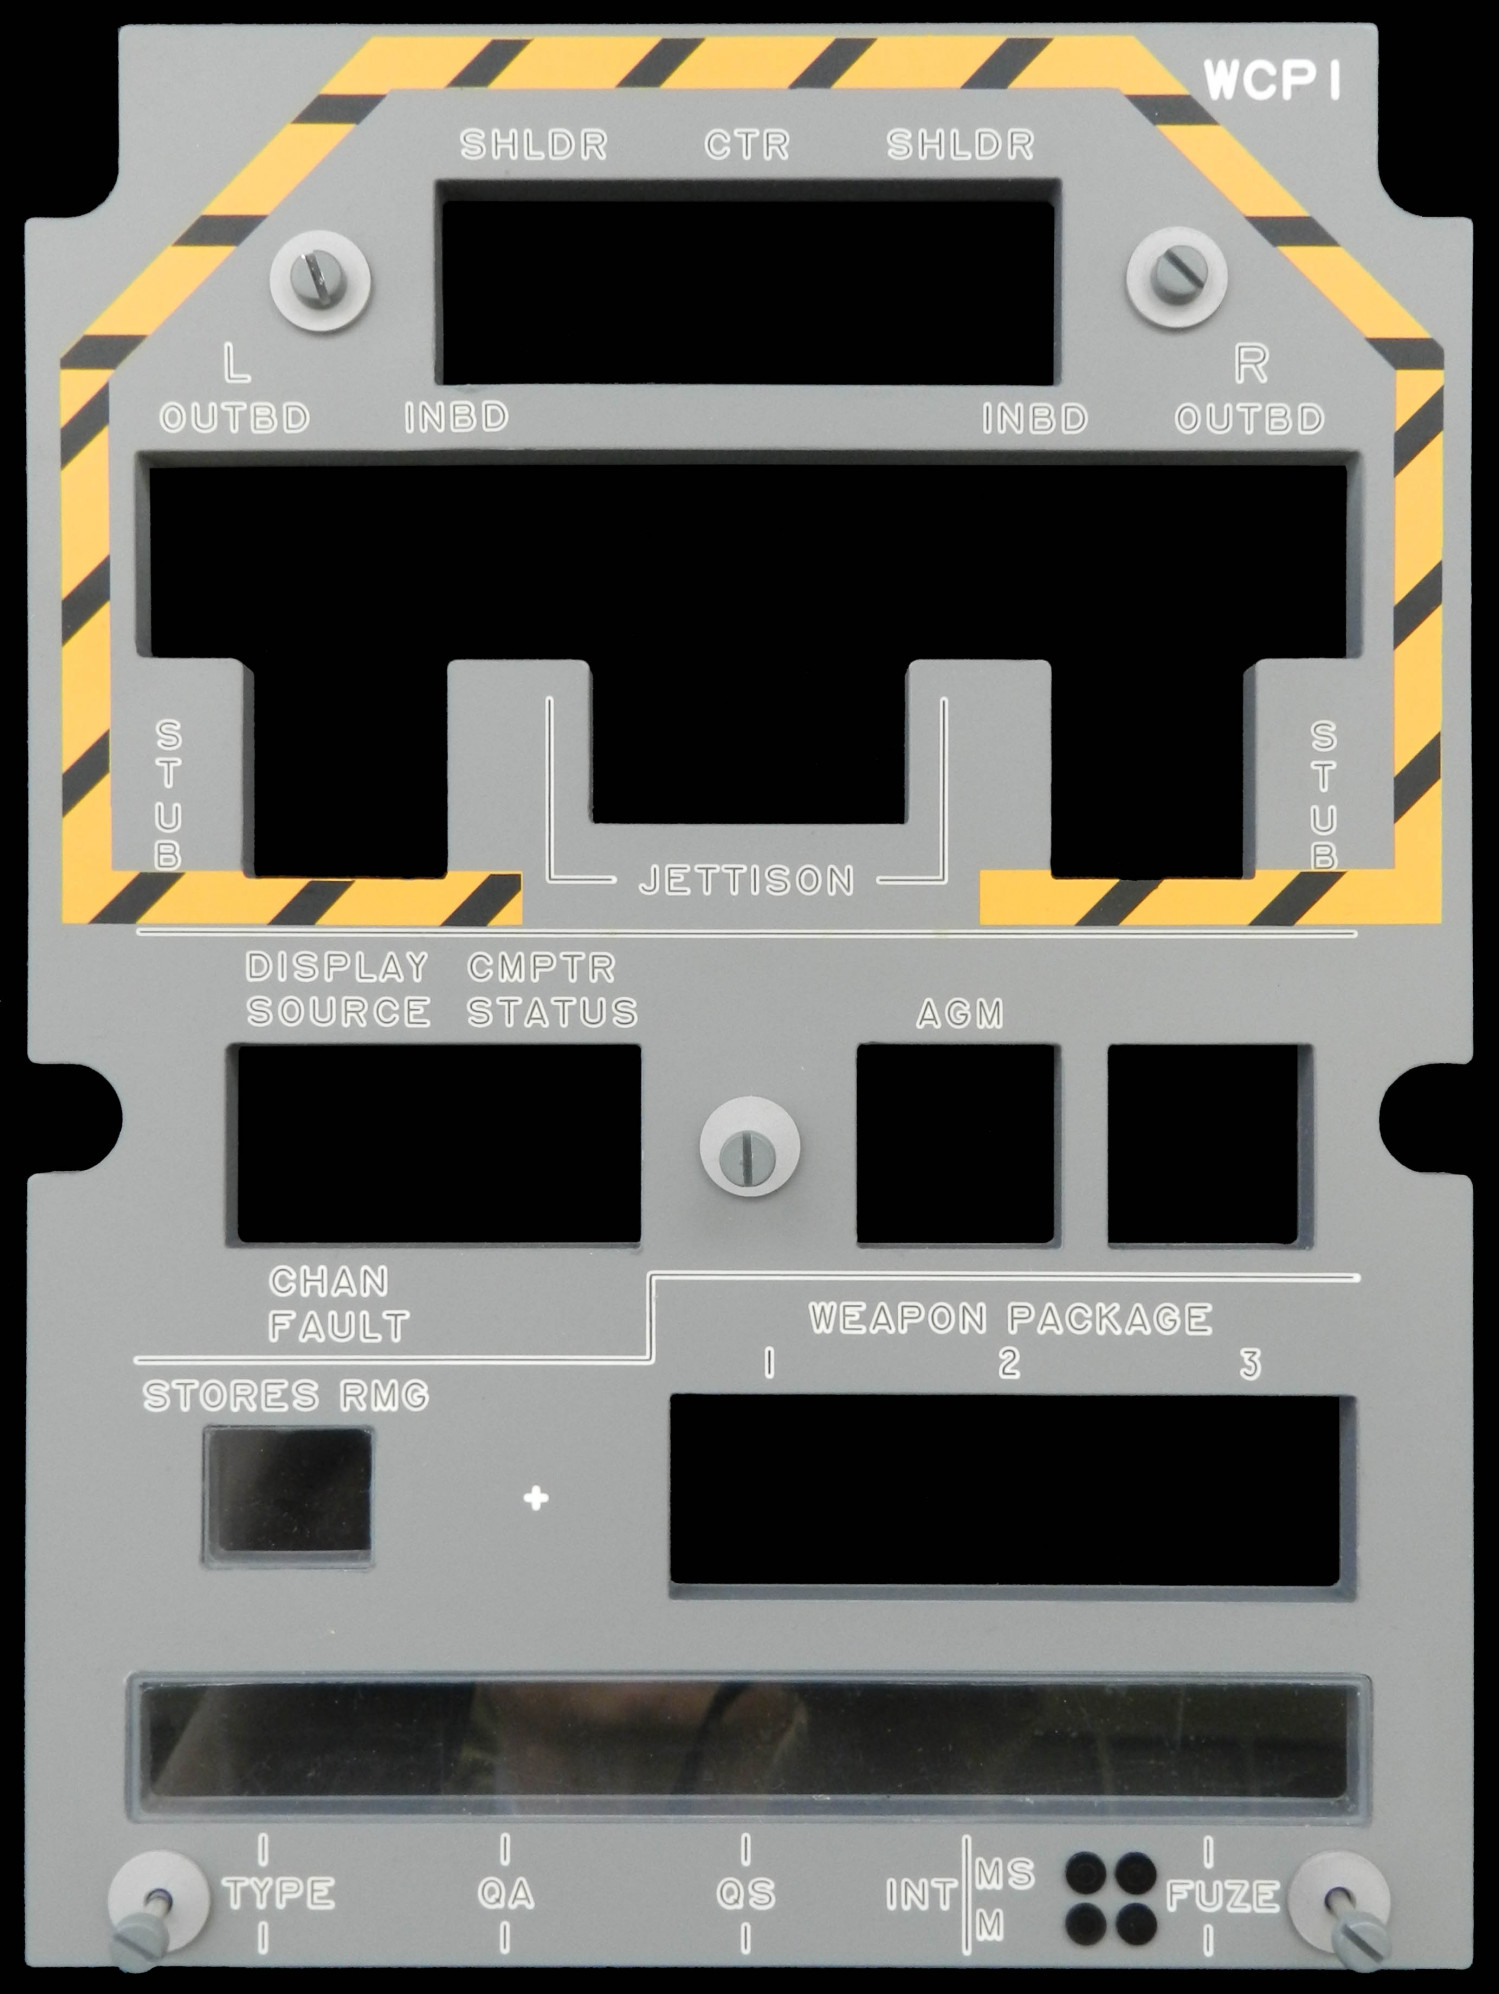 Front Panel Bezel for Weapons Control Panel 1